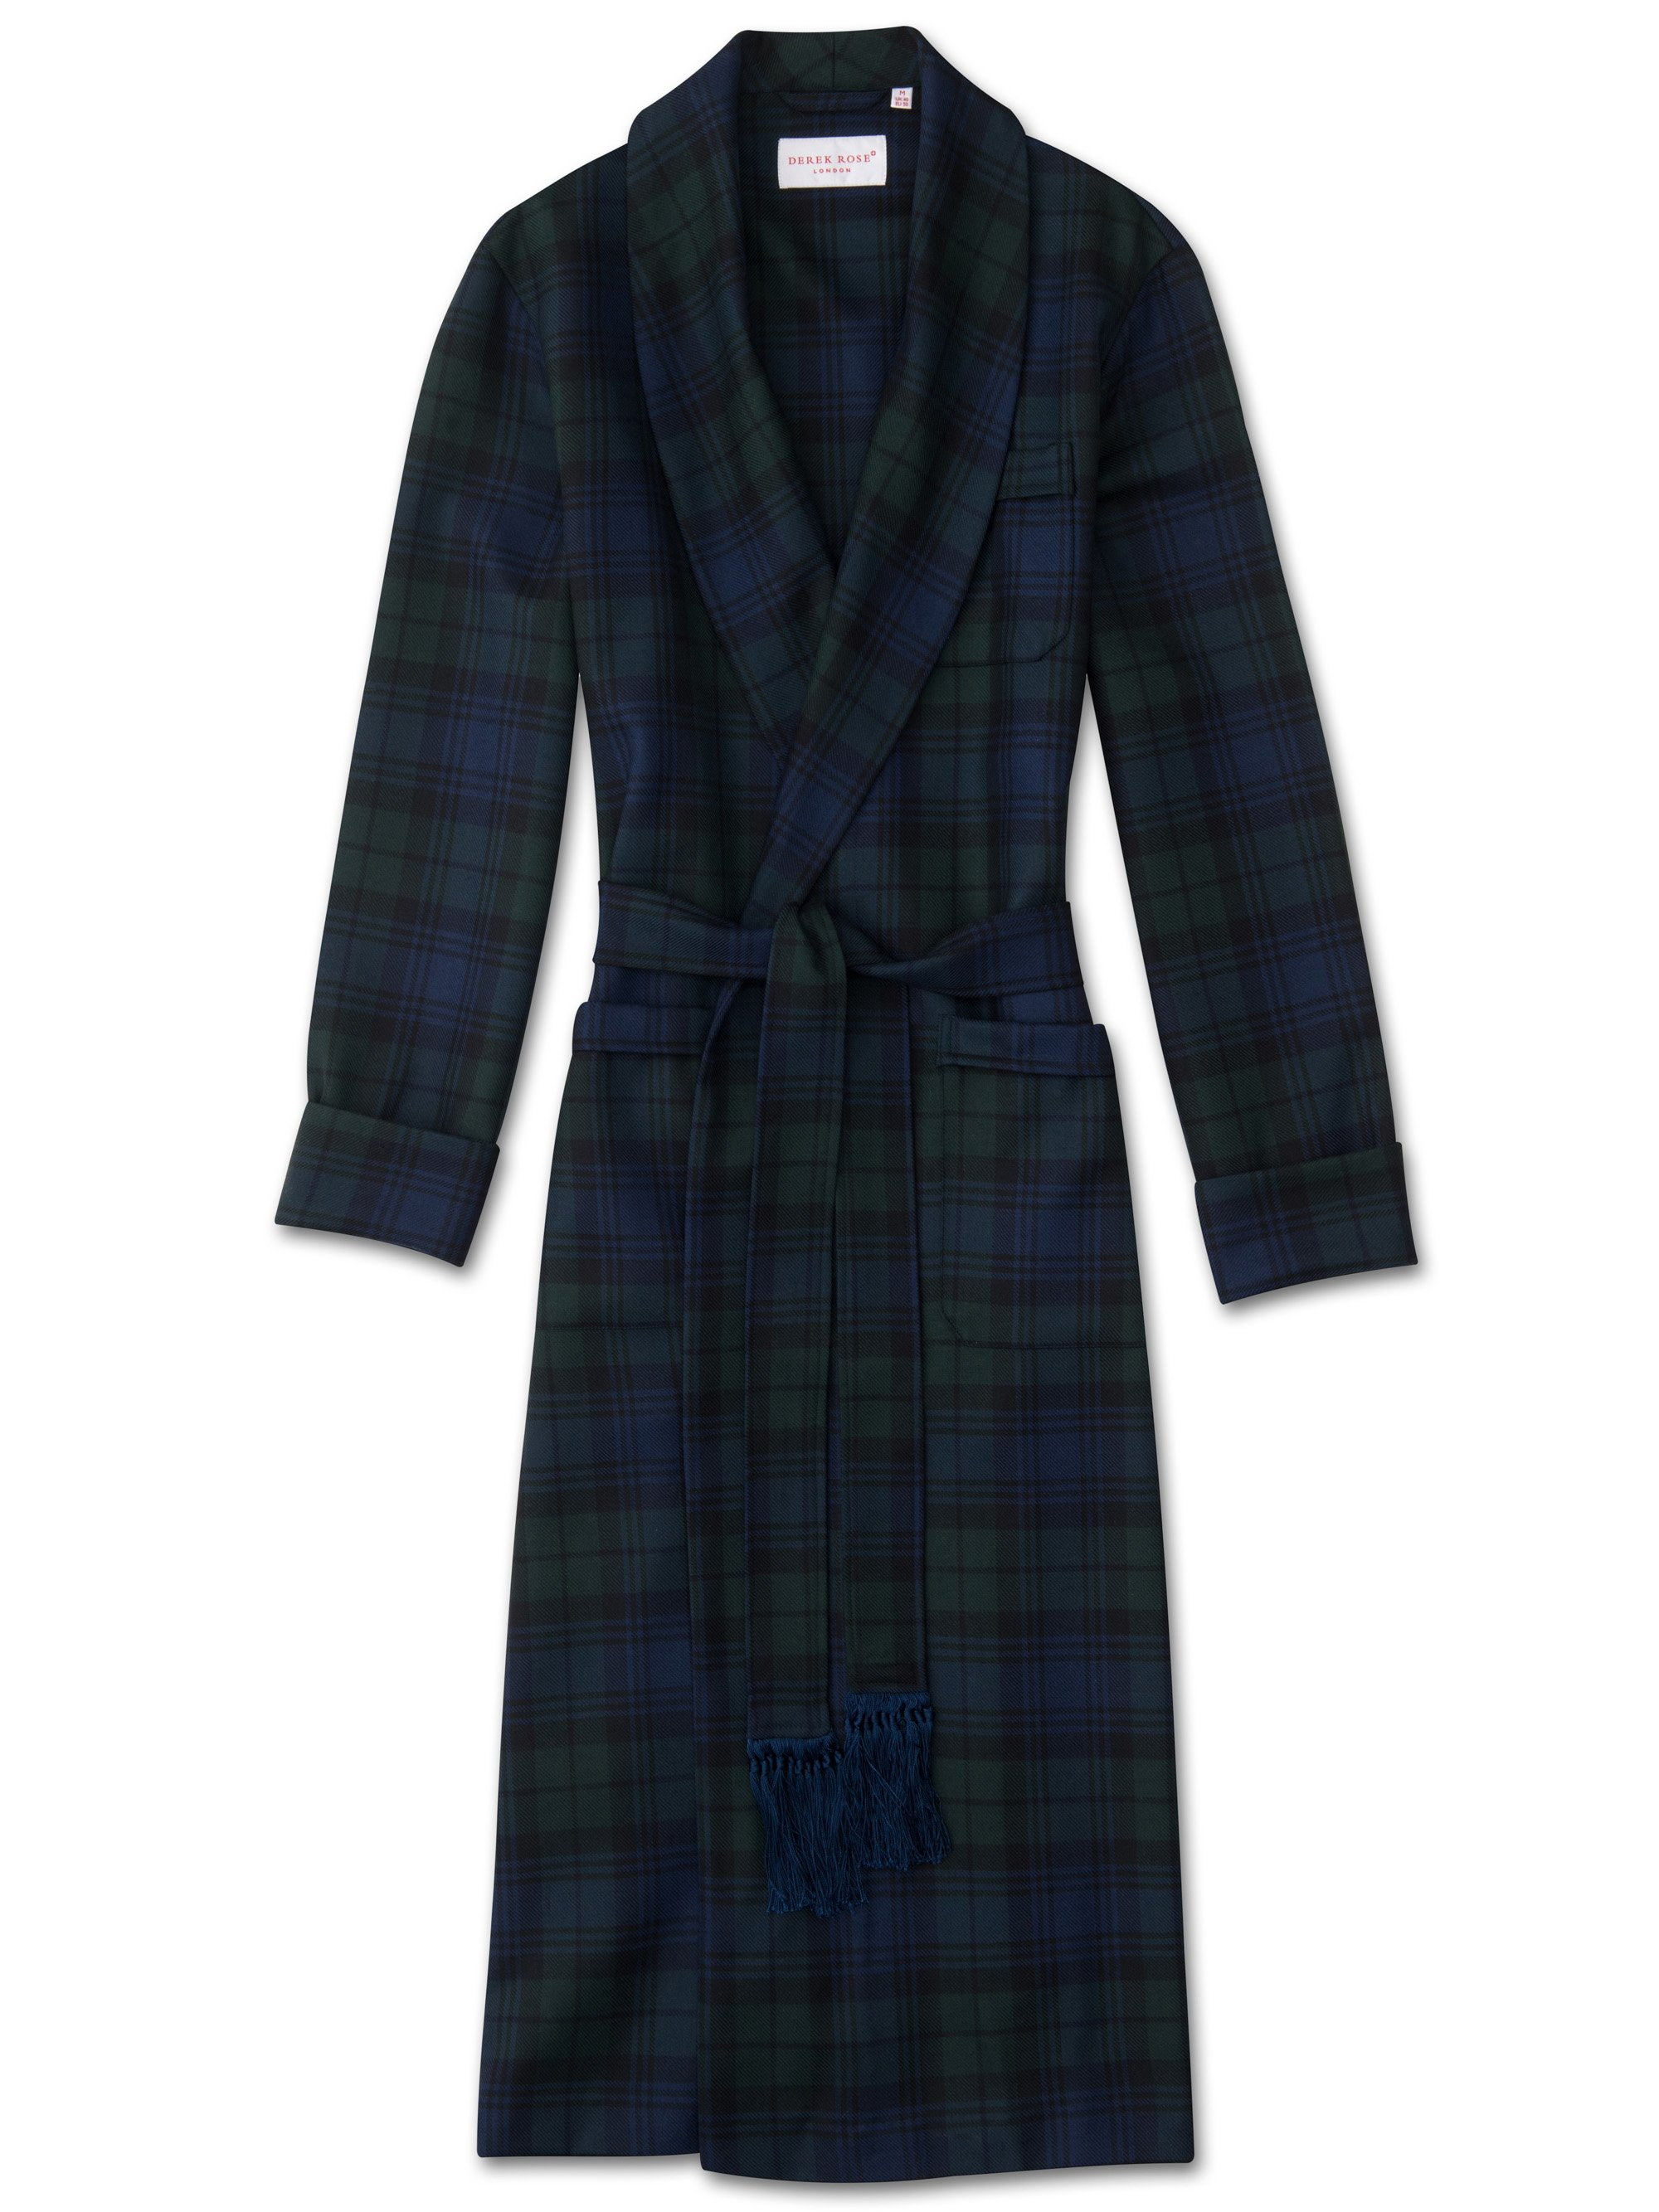 Mens Dressing Gown Tartan Wool Check | Derek Rose | Derek Rose